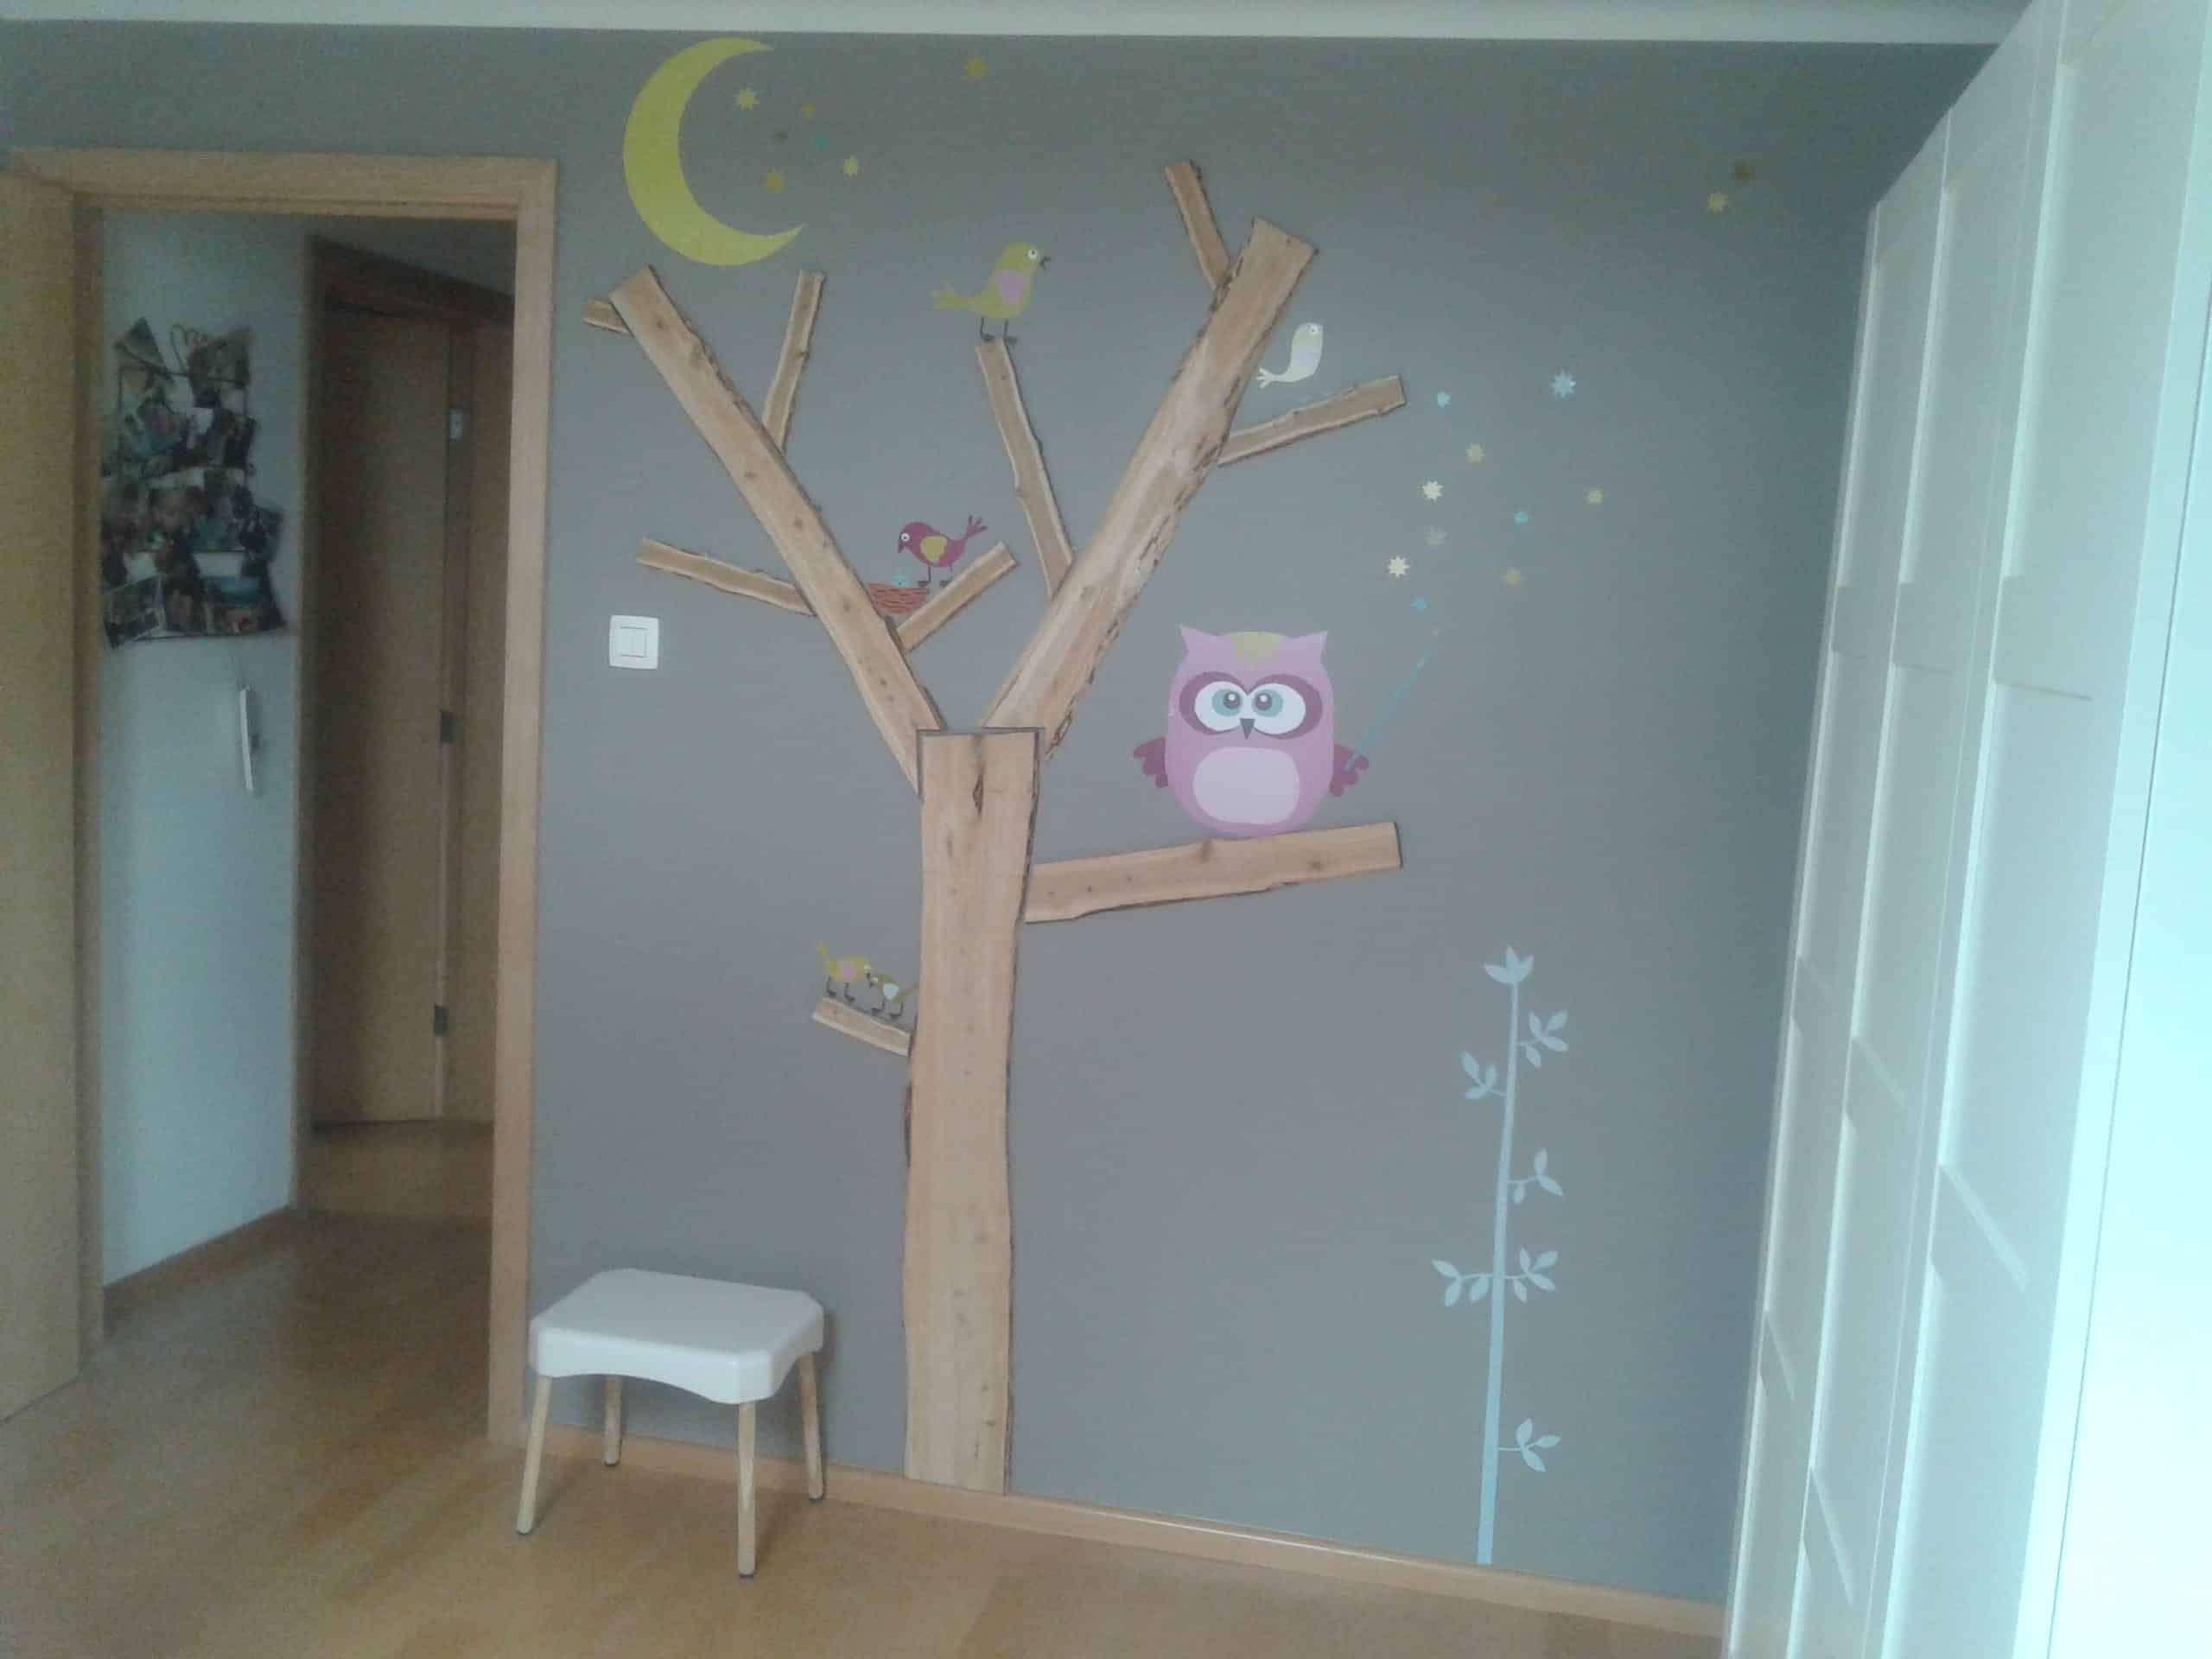 d 233 coration arbre pour chambre b 233 b 233 fille tree wall d 233 cor for my bedroom recycled